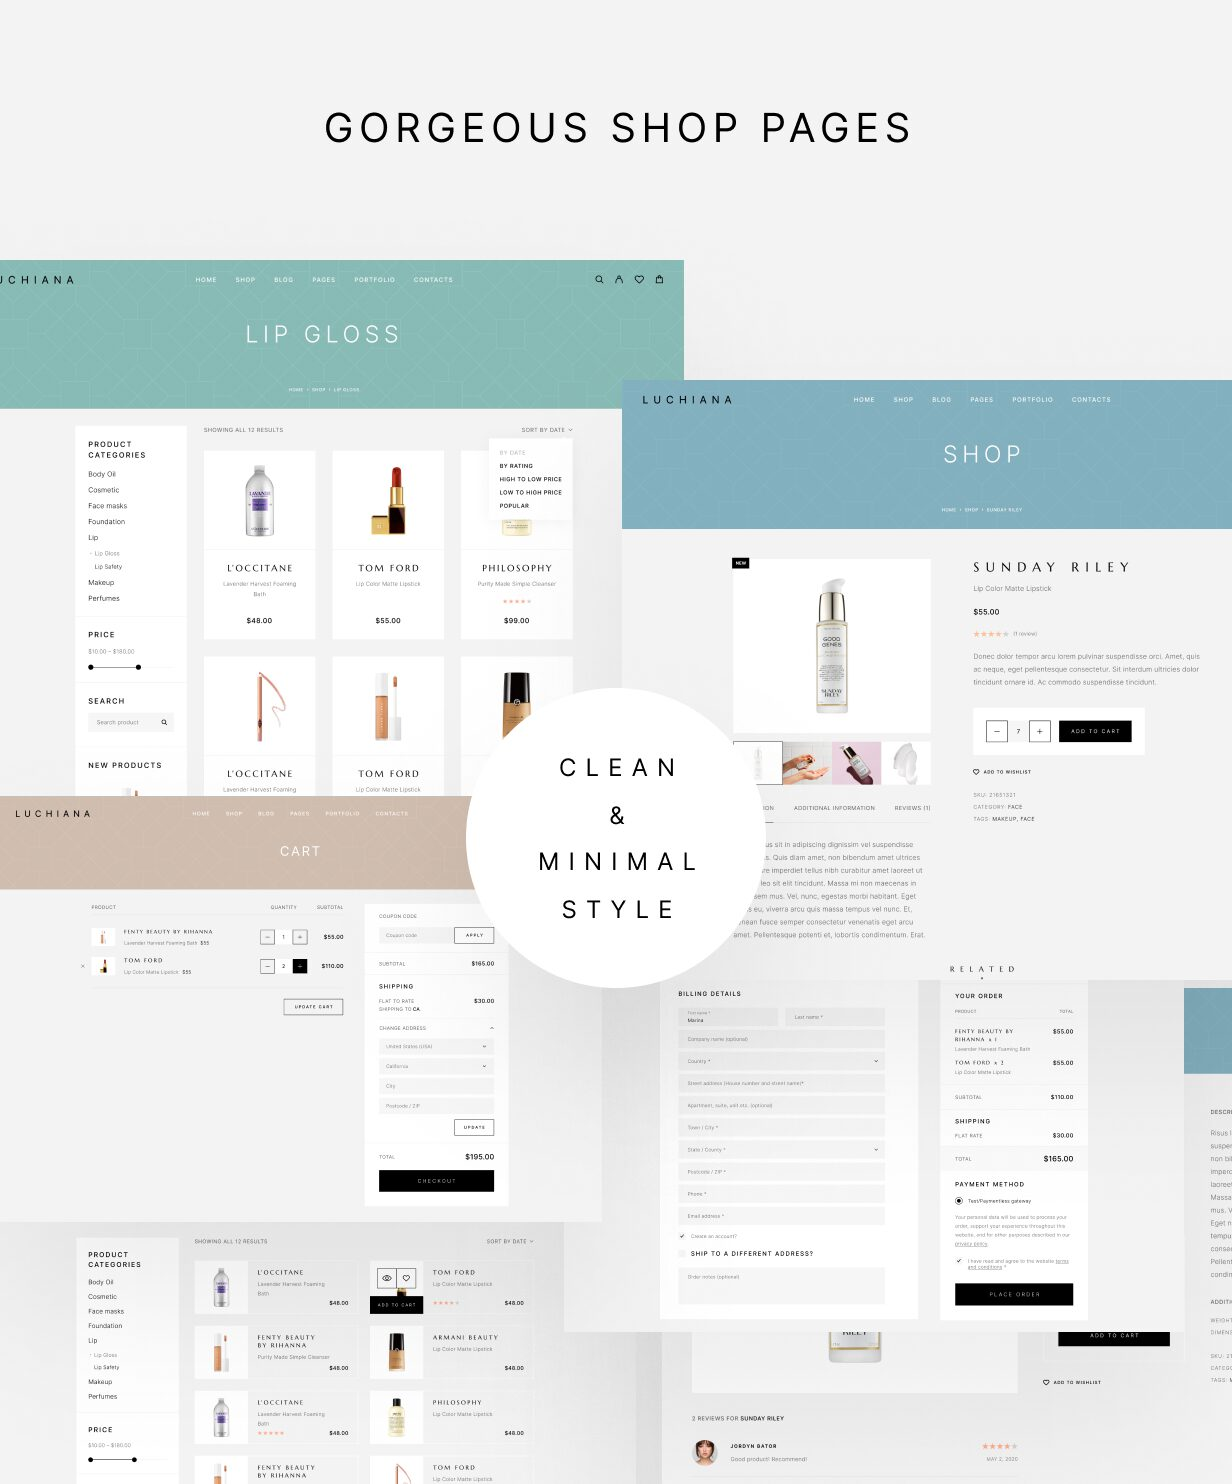 Luchiana - Gorgeous Shop Pages - Clean And Minimal Style